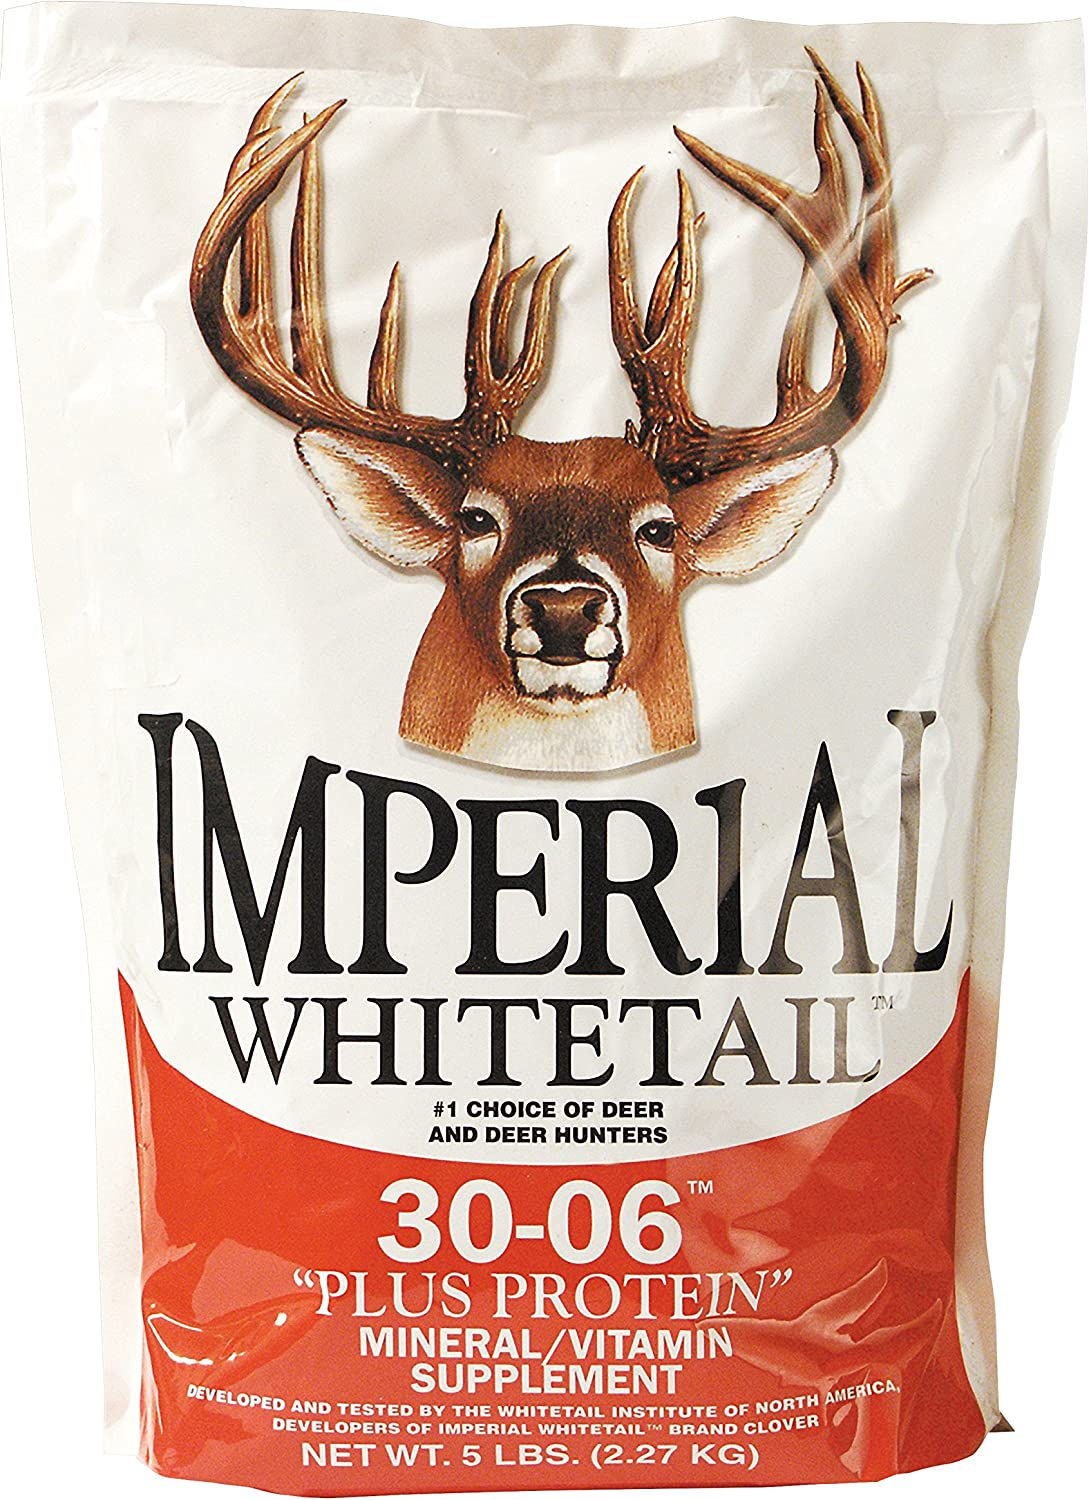 Whitetail Institute 30-06 Mineral and Vitamin Supplement for Deer Food Plots, Provides Antler-Building Nutrition and Attracts Deer